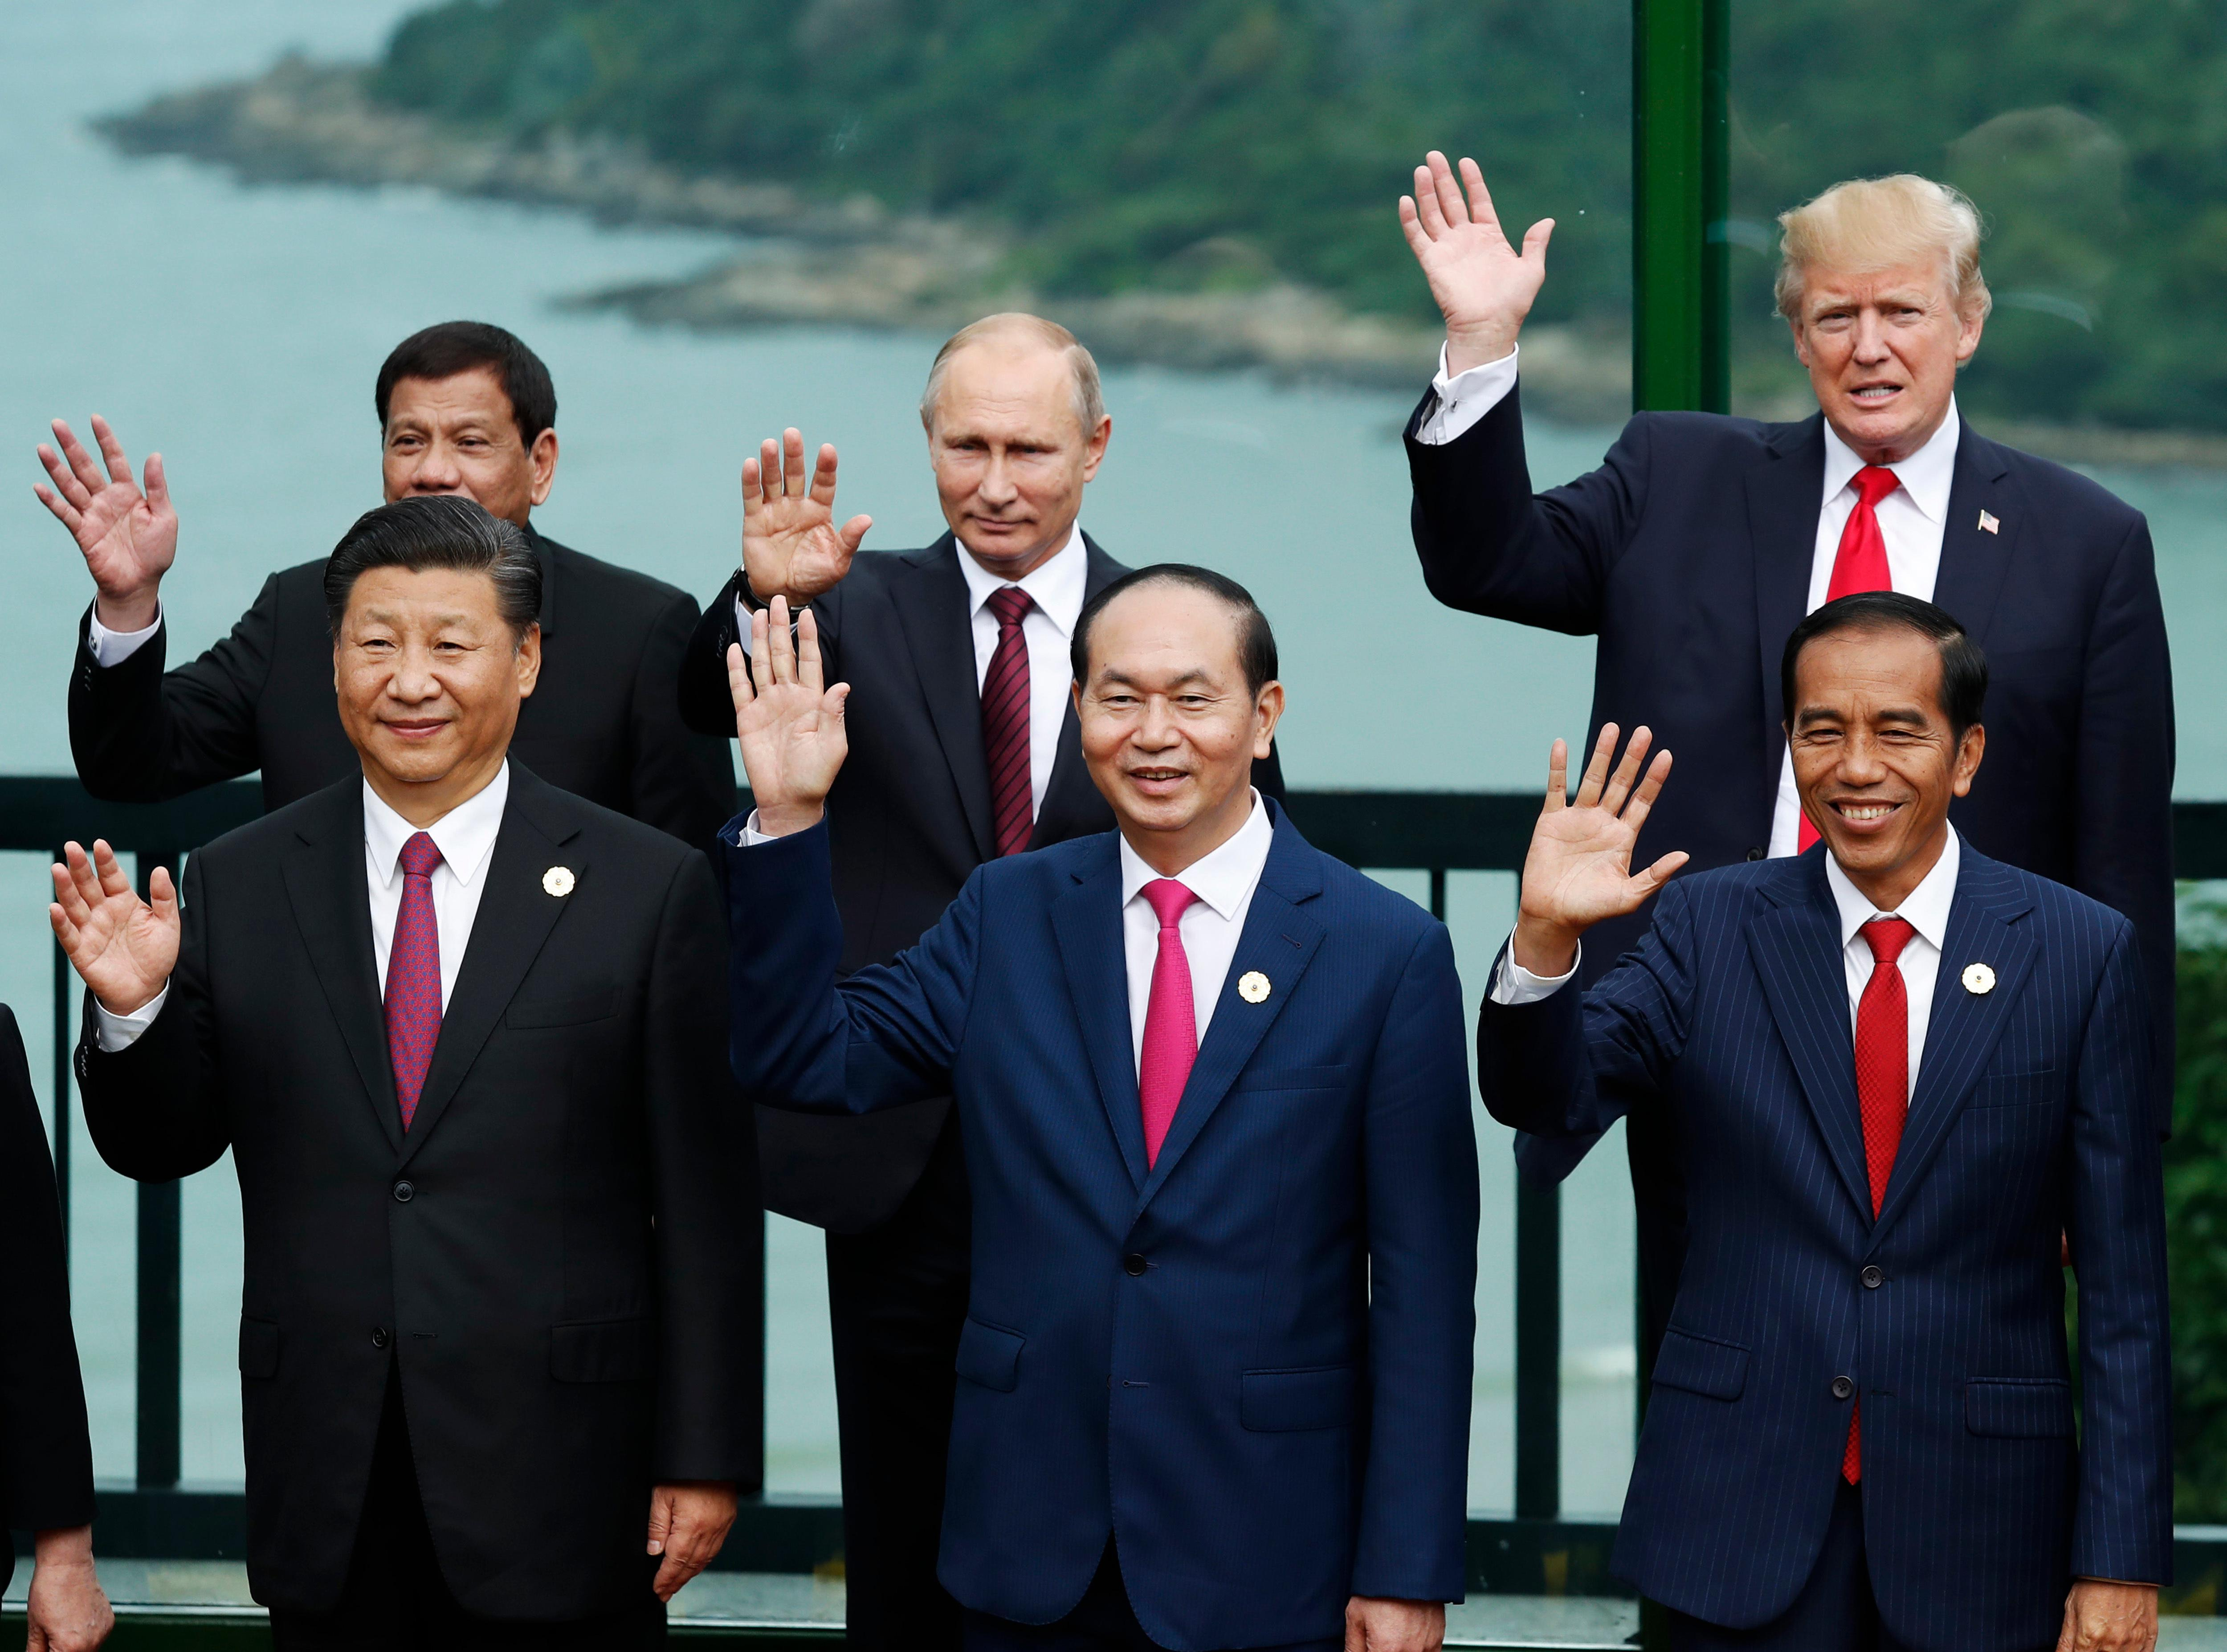 Leaders pose during the family photo session at the APEC Summit in Danang, Vietnam, Saturday, Nov. 11, 2017. Front left to right; China's President Xi Jinping, Vietnam's President Tran Dai Quang, Indonesia's President Joko Widodo, back left to right; Philippines' President Rodrigo Duterte, Russia's President Vladimir Putin, U.S. President Donald Trump. (Jorge Silva/Pool Photo via AP)